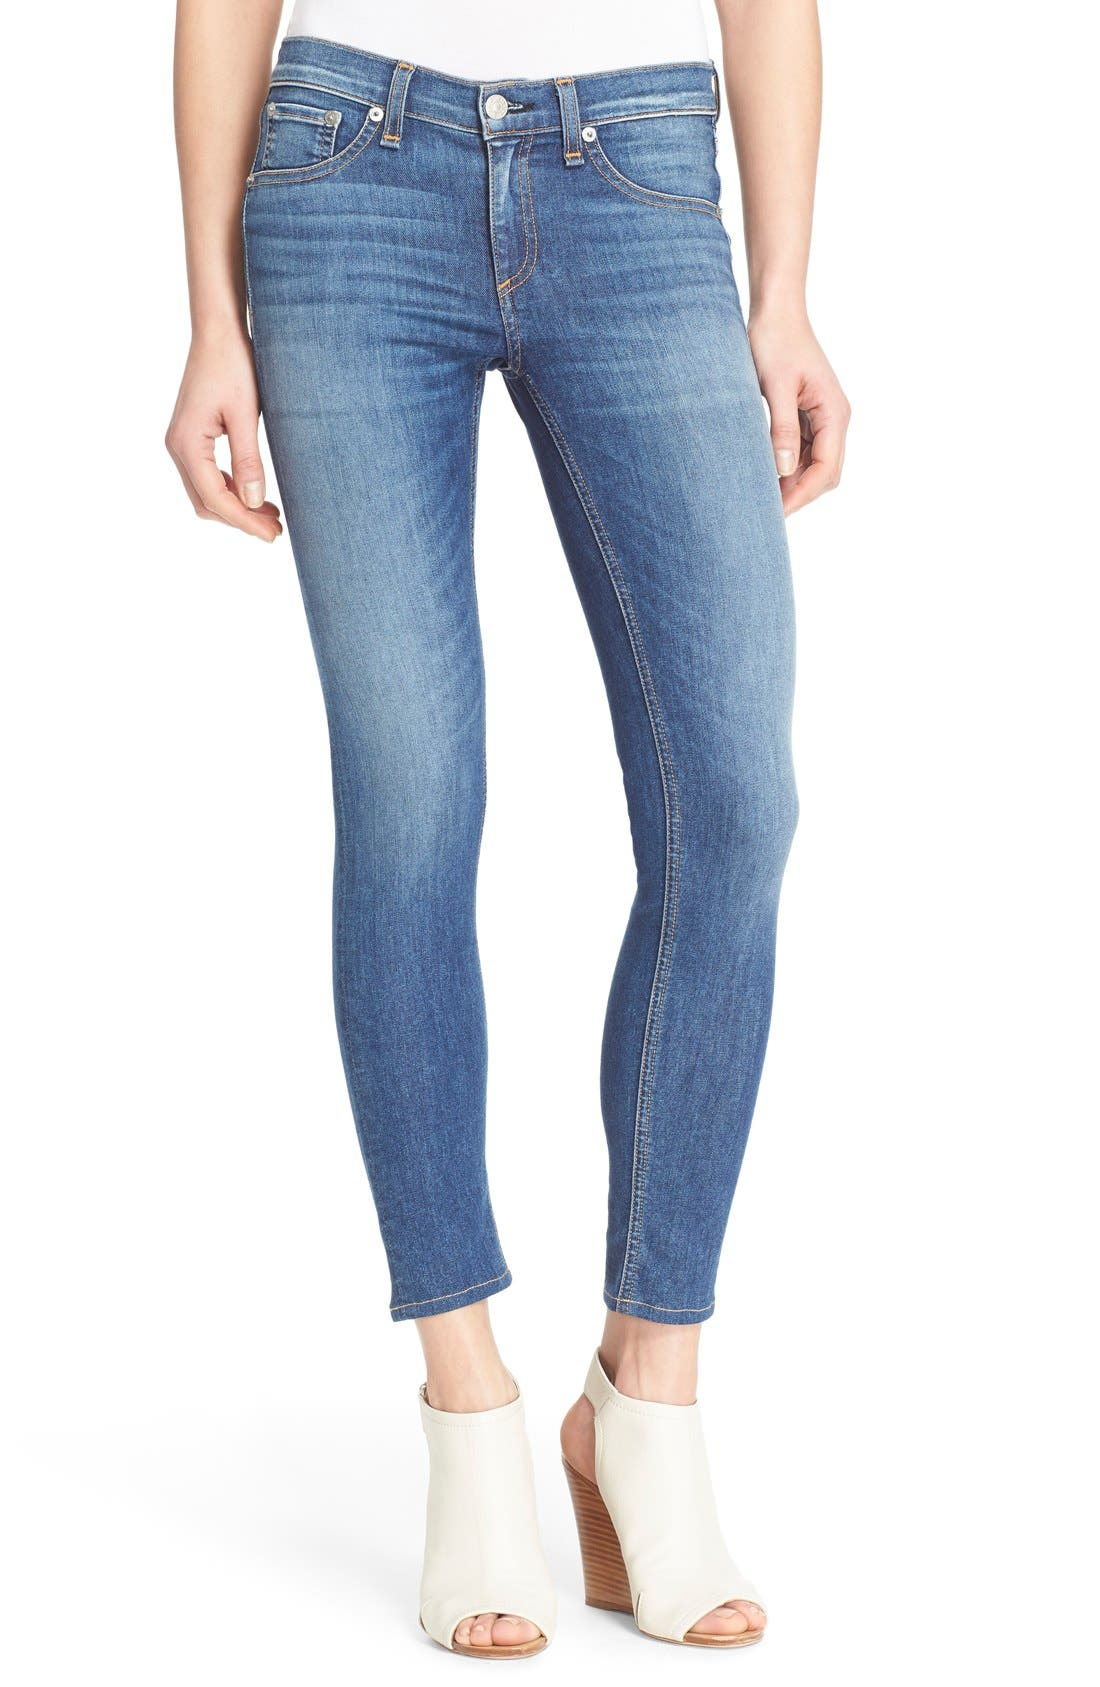 Alternate Image 1 Selected - rag & bone/JEAN Capri Crop Skinny Jeans (Rae)